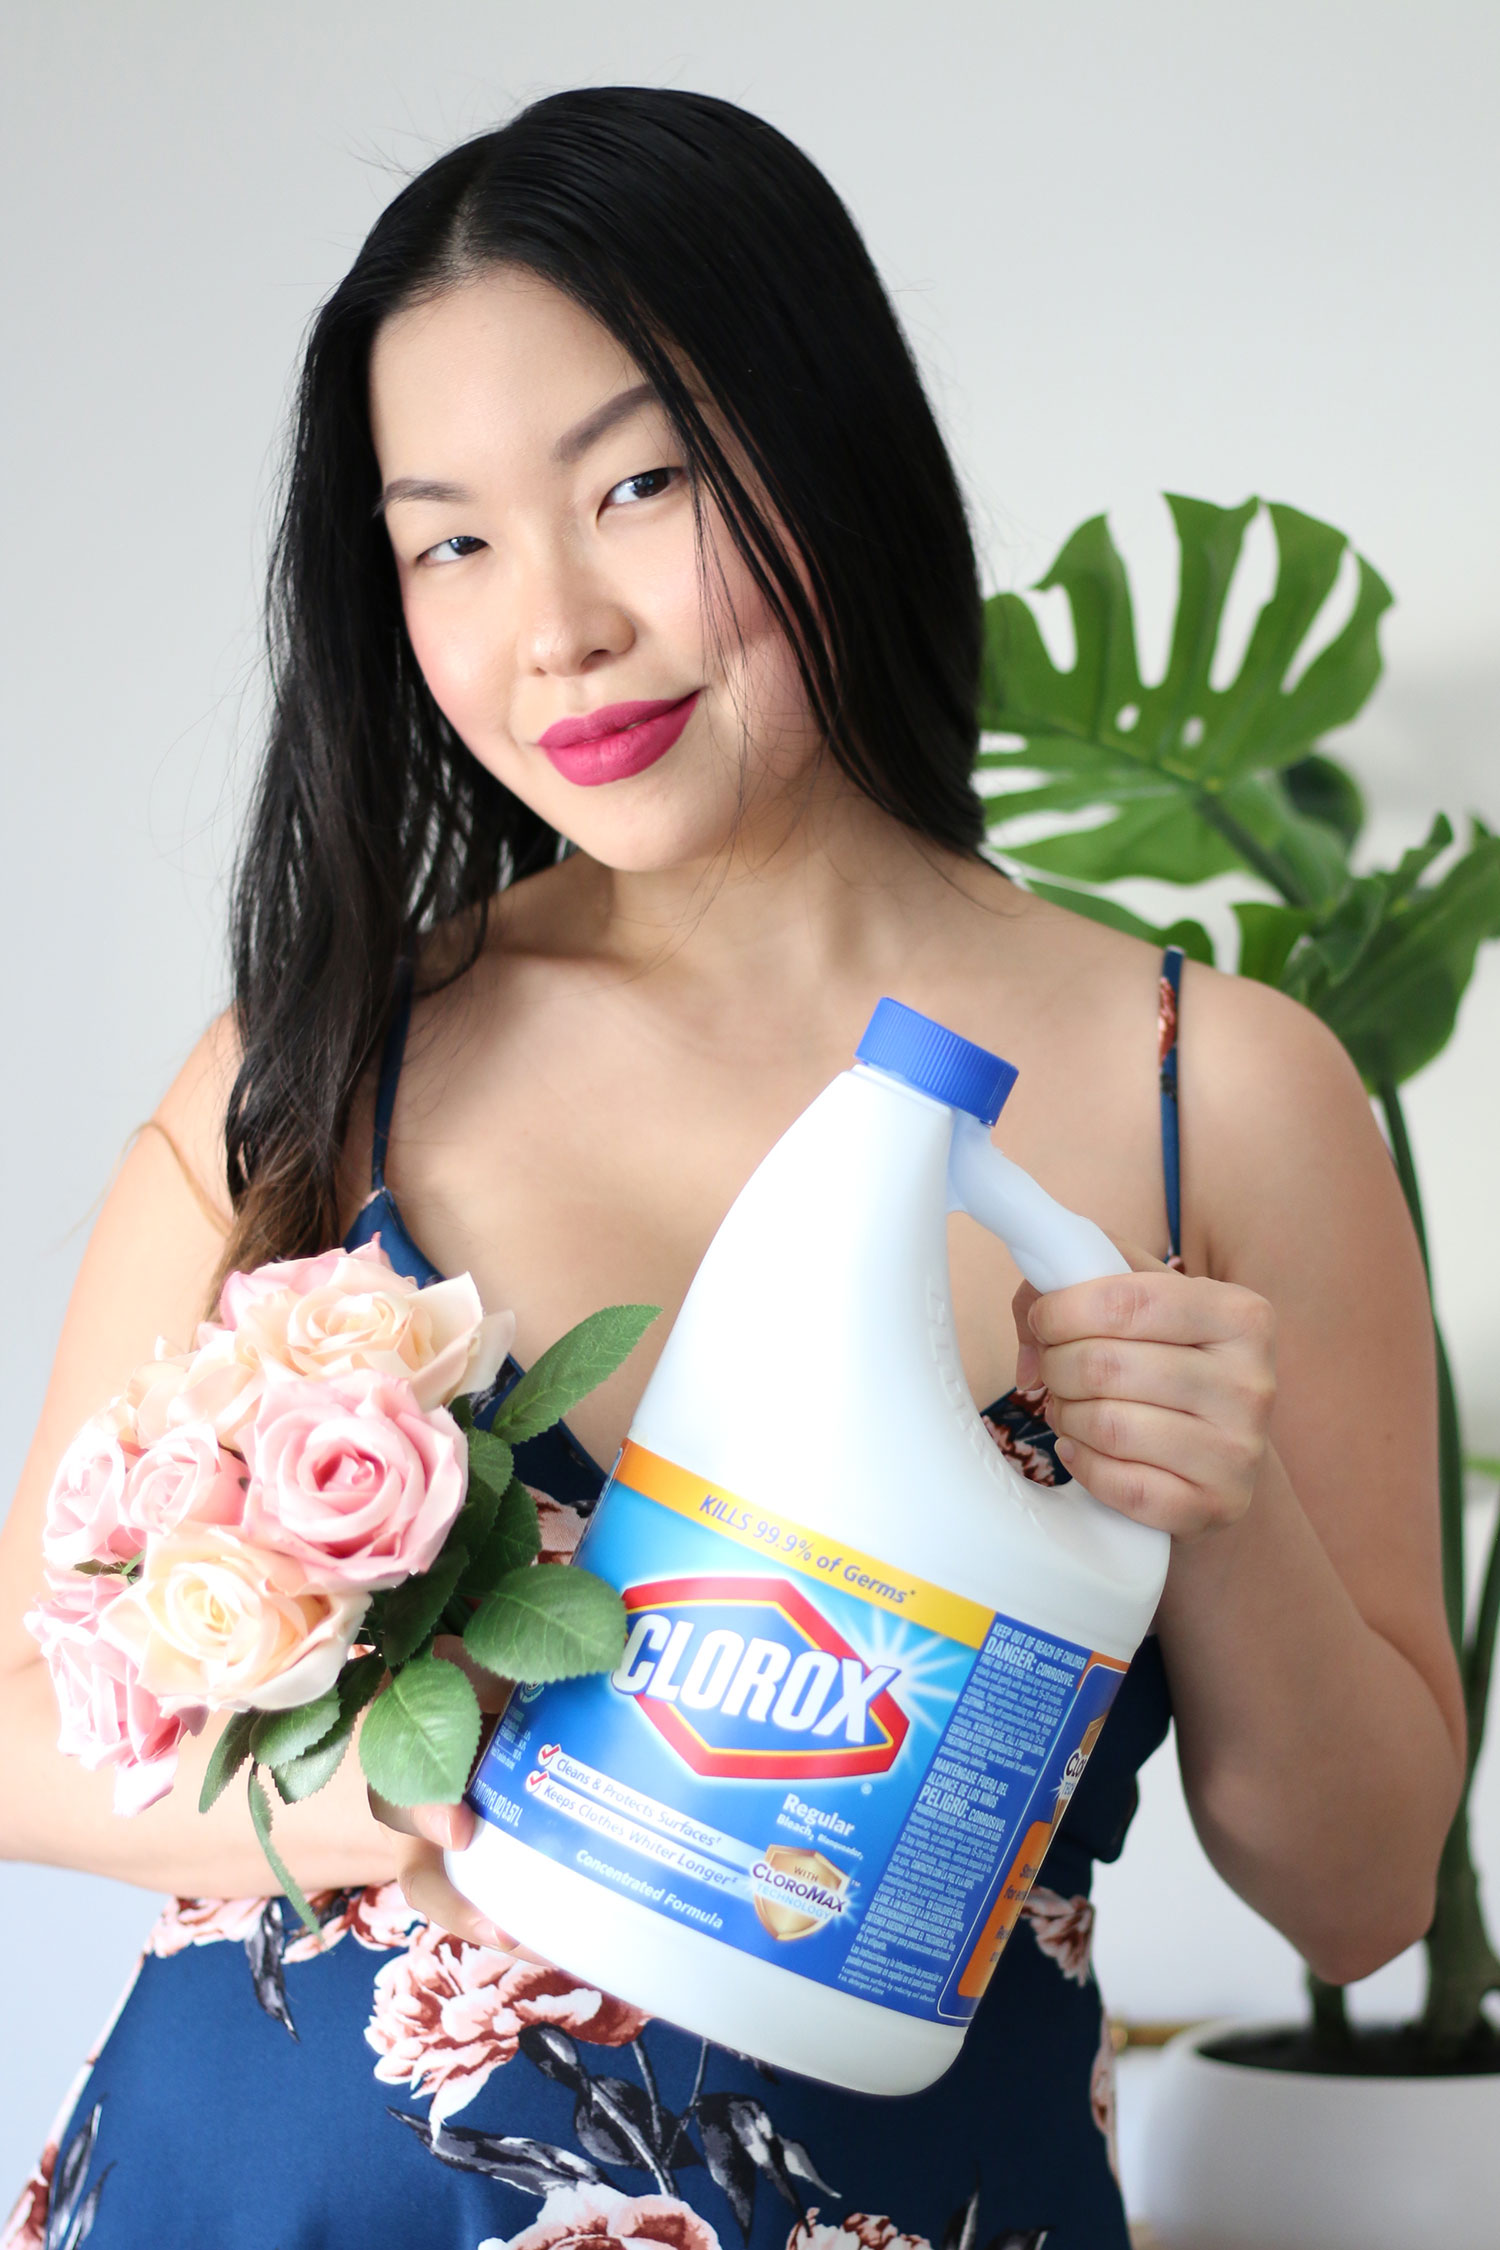 Clorox Bleach with CLOROXMAX